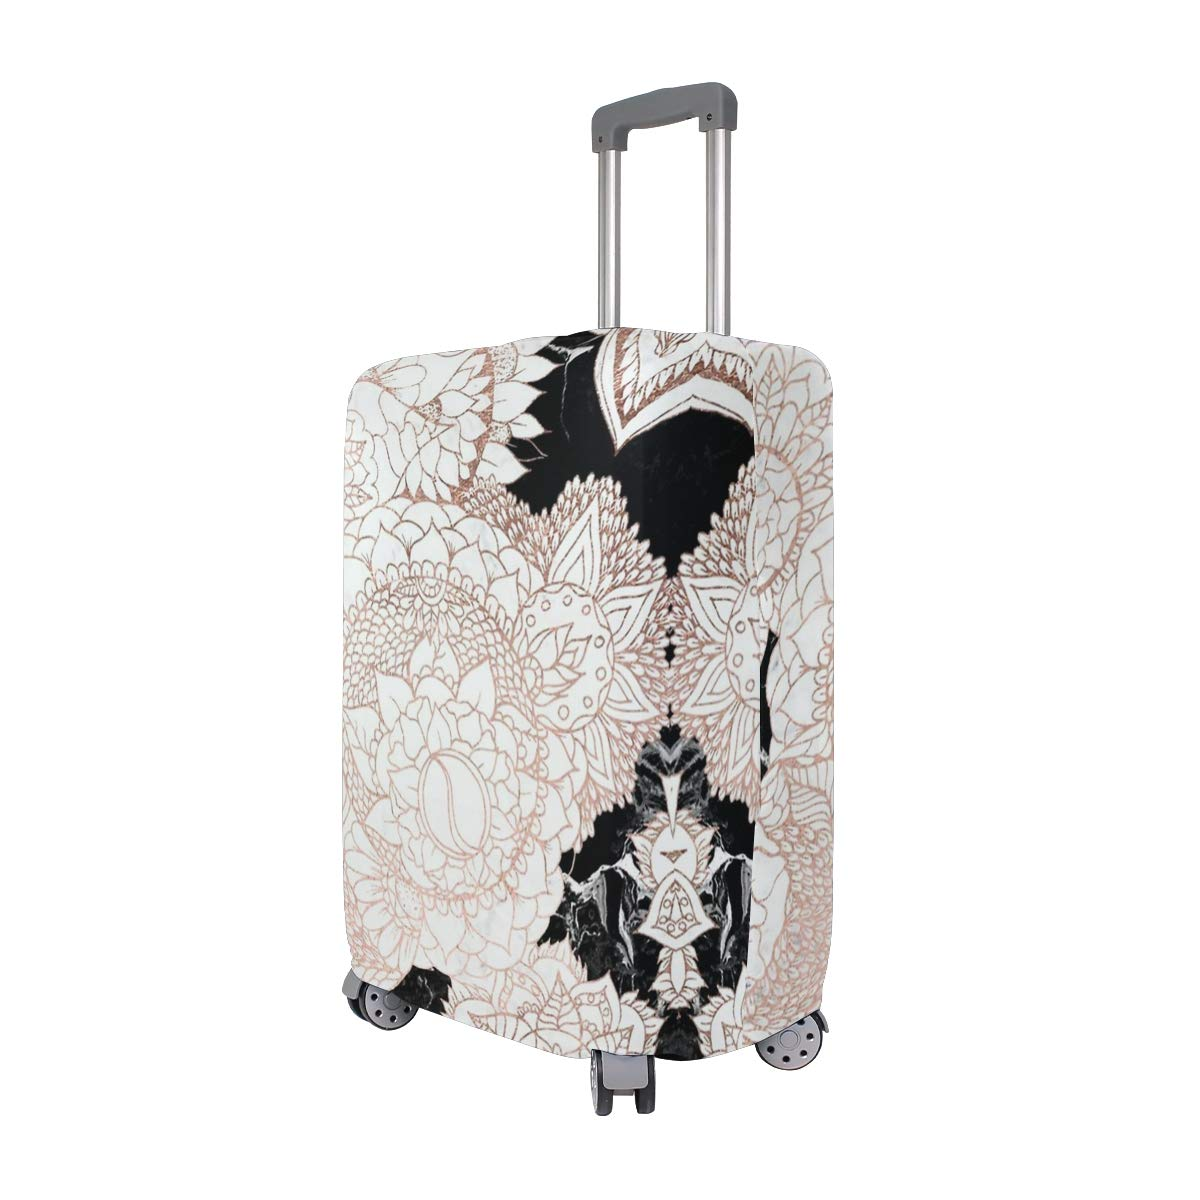 Rose Gold Floral Traveler Lightweight Rotating Luggage Cover Can Carry With You Can Expand Travel Bag Trolley Rolling Luggage Cover